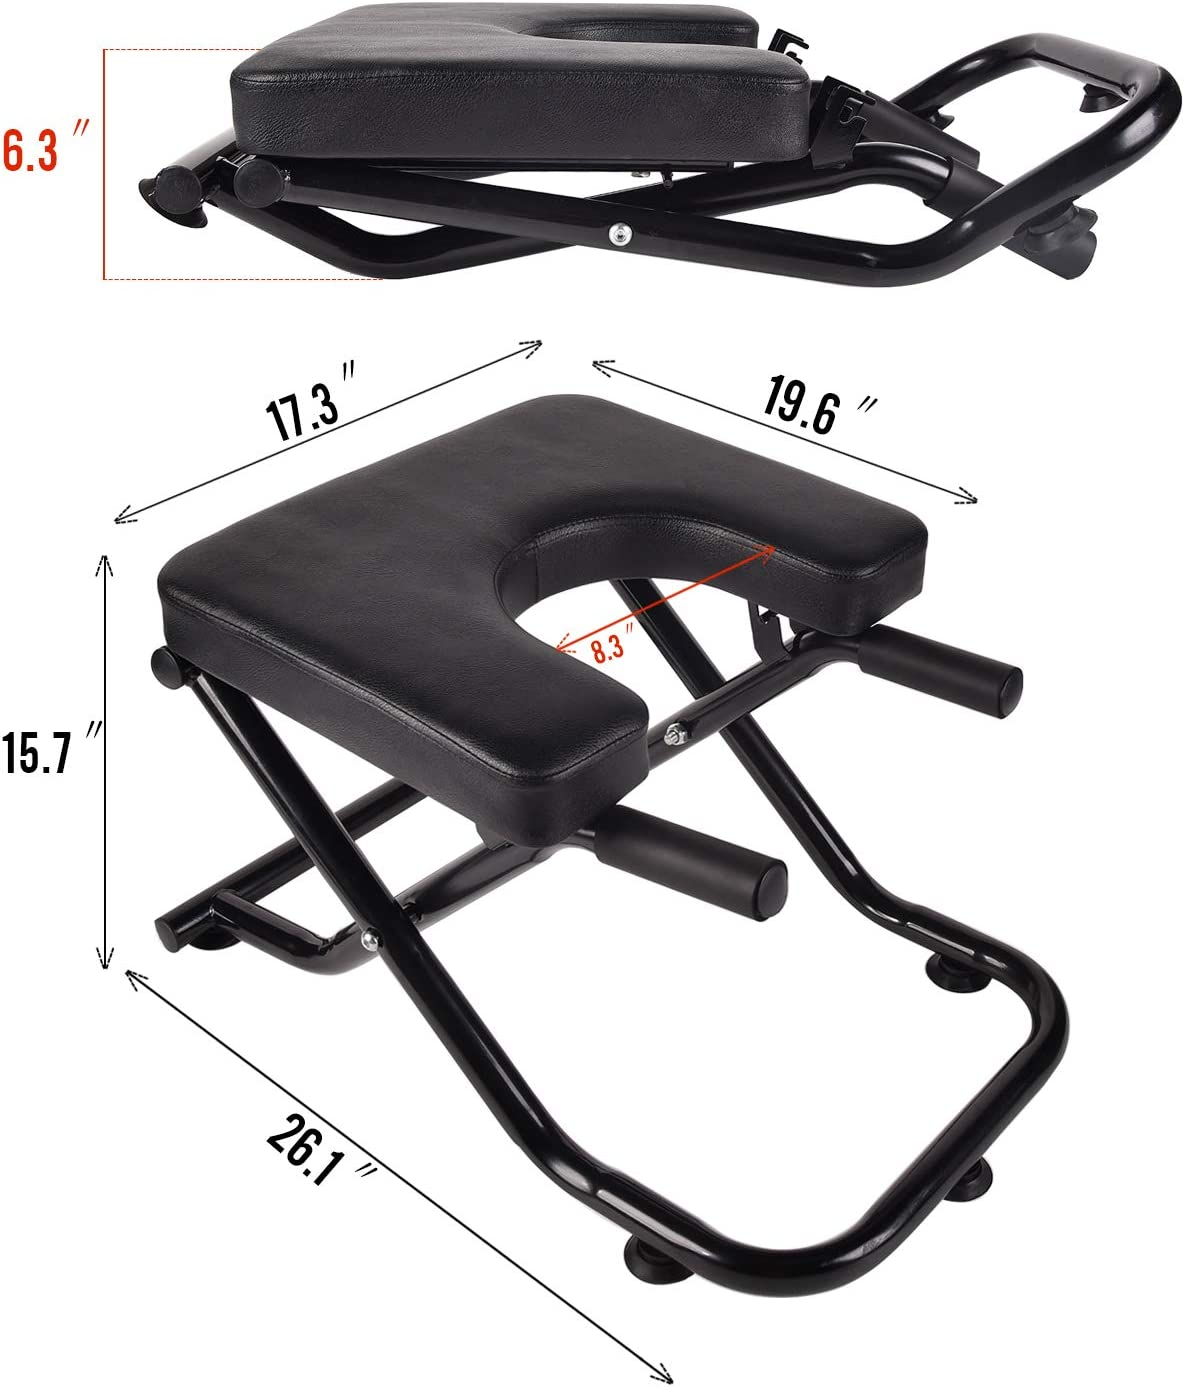 Gym Fitness Stand Yoga Chair for feet up Yoga Trainer Leg Stool Workouts for Family YU YUSING Yoga Headstand Inversion Bench with Suction Cup